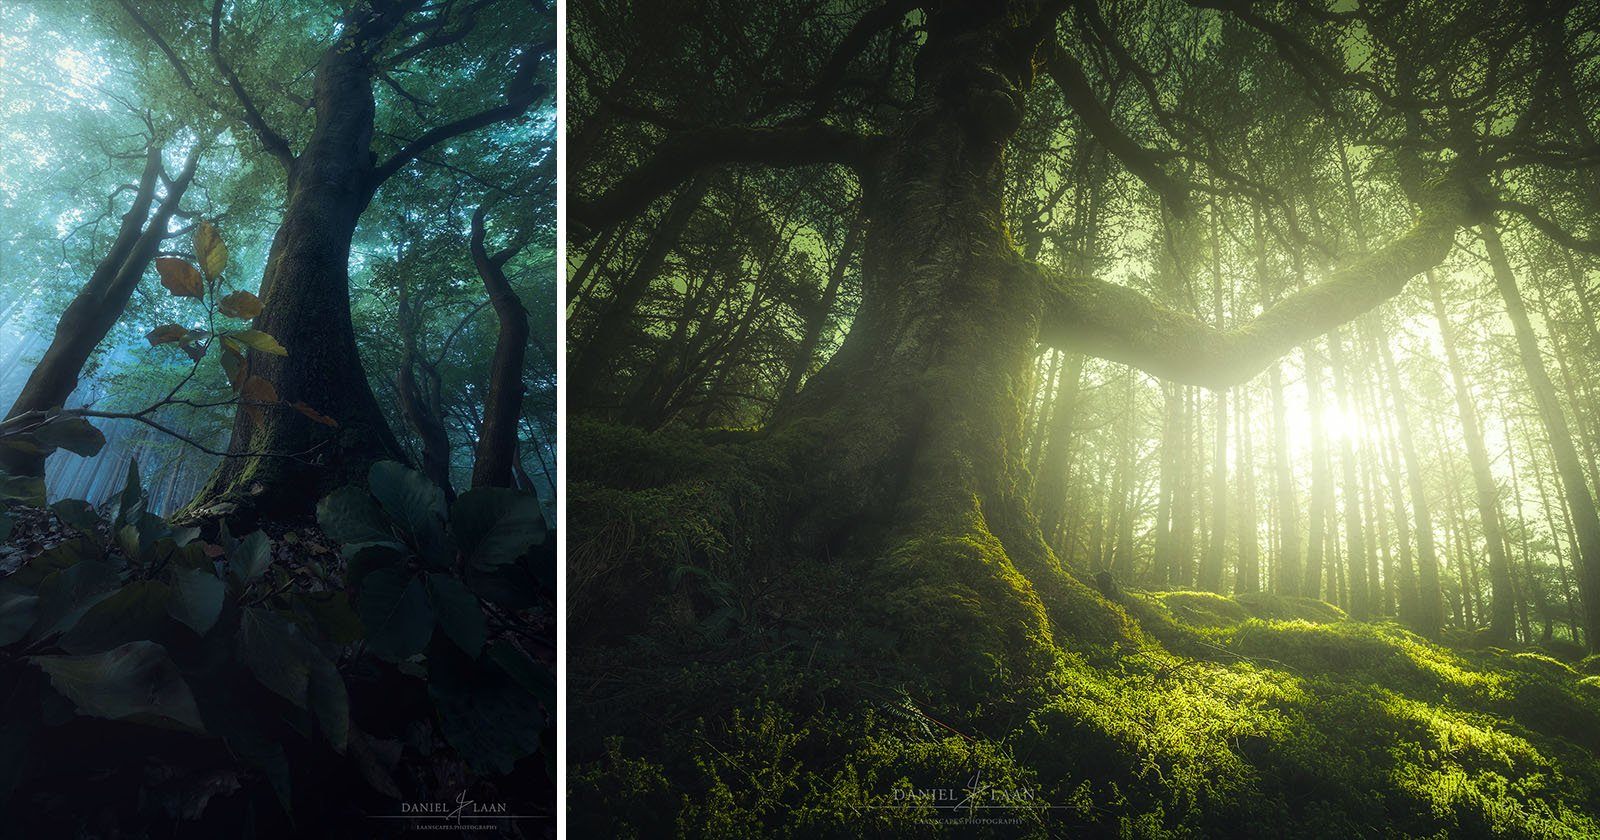 How to Shoot Epic Wide-Angle Photos of Trees